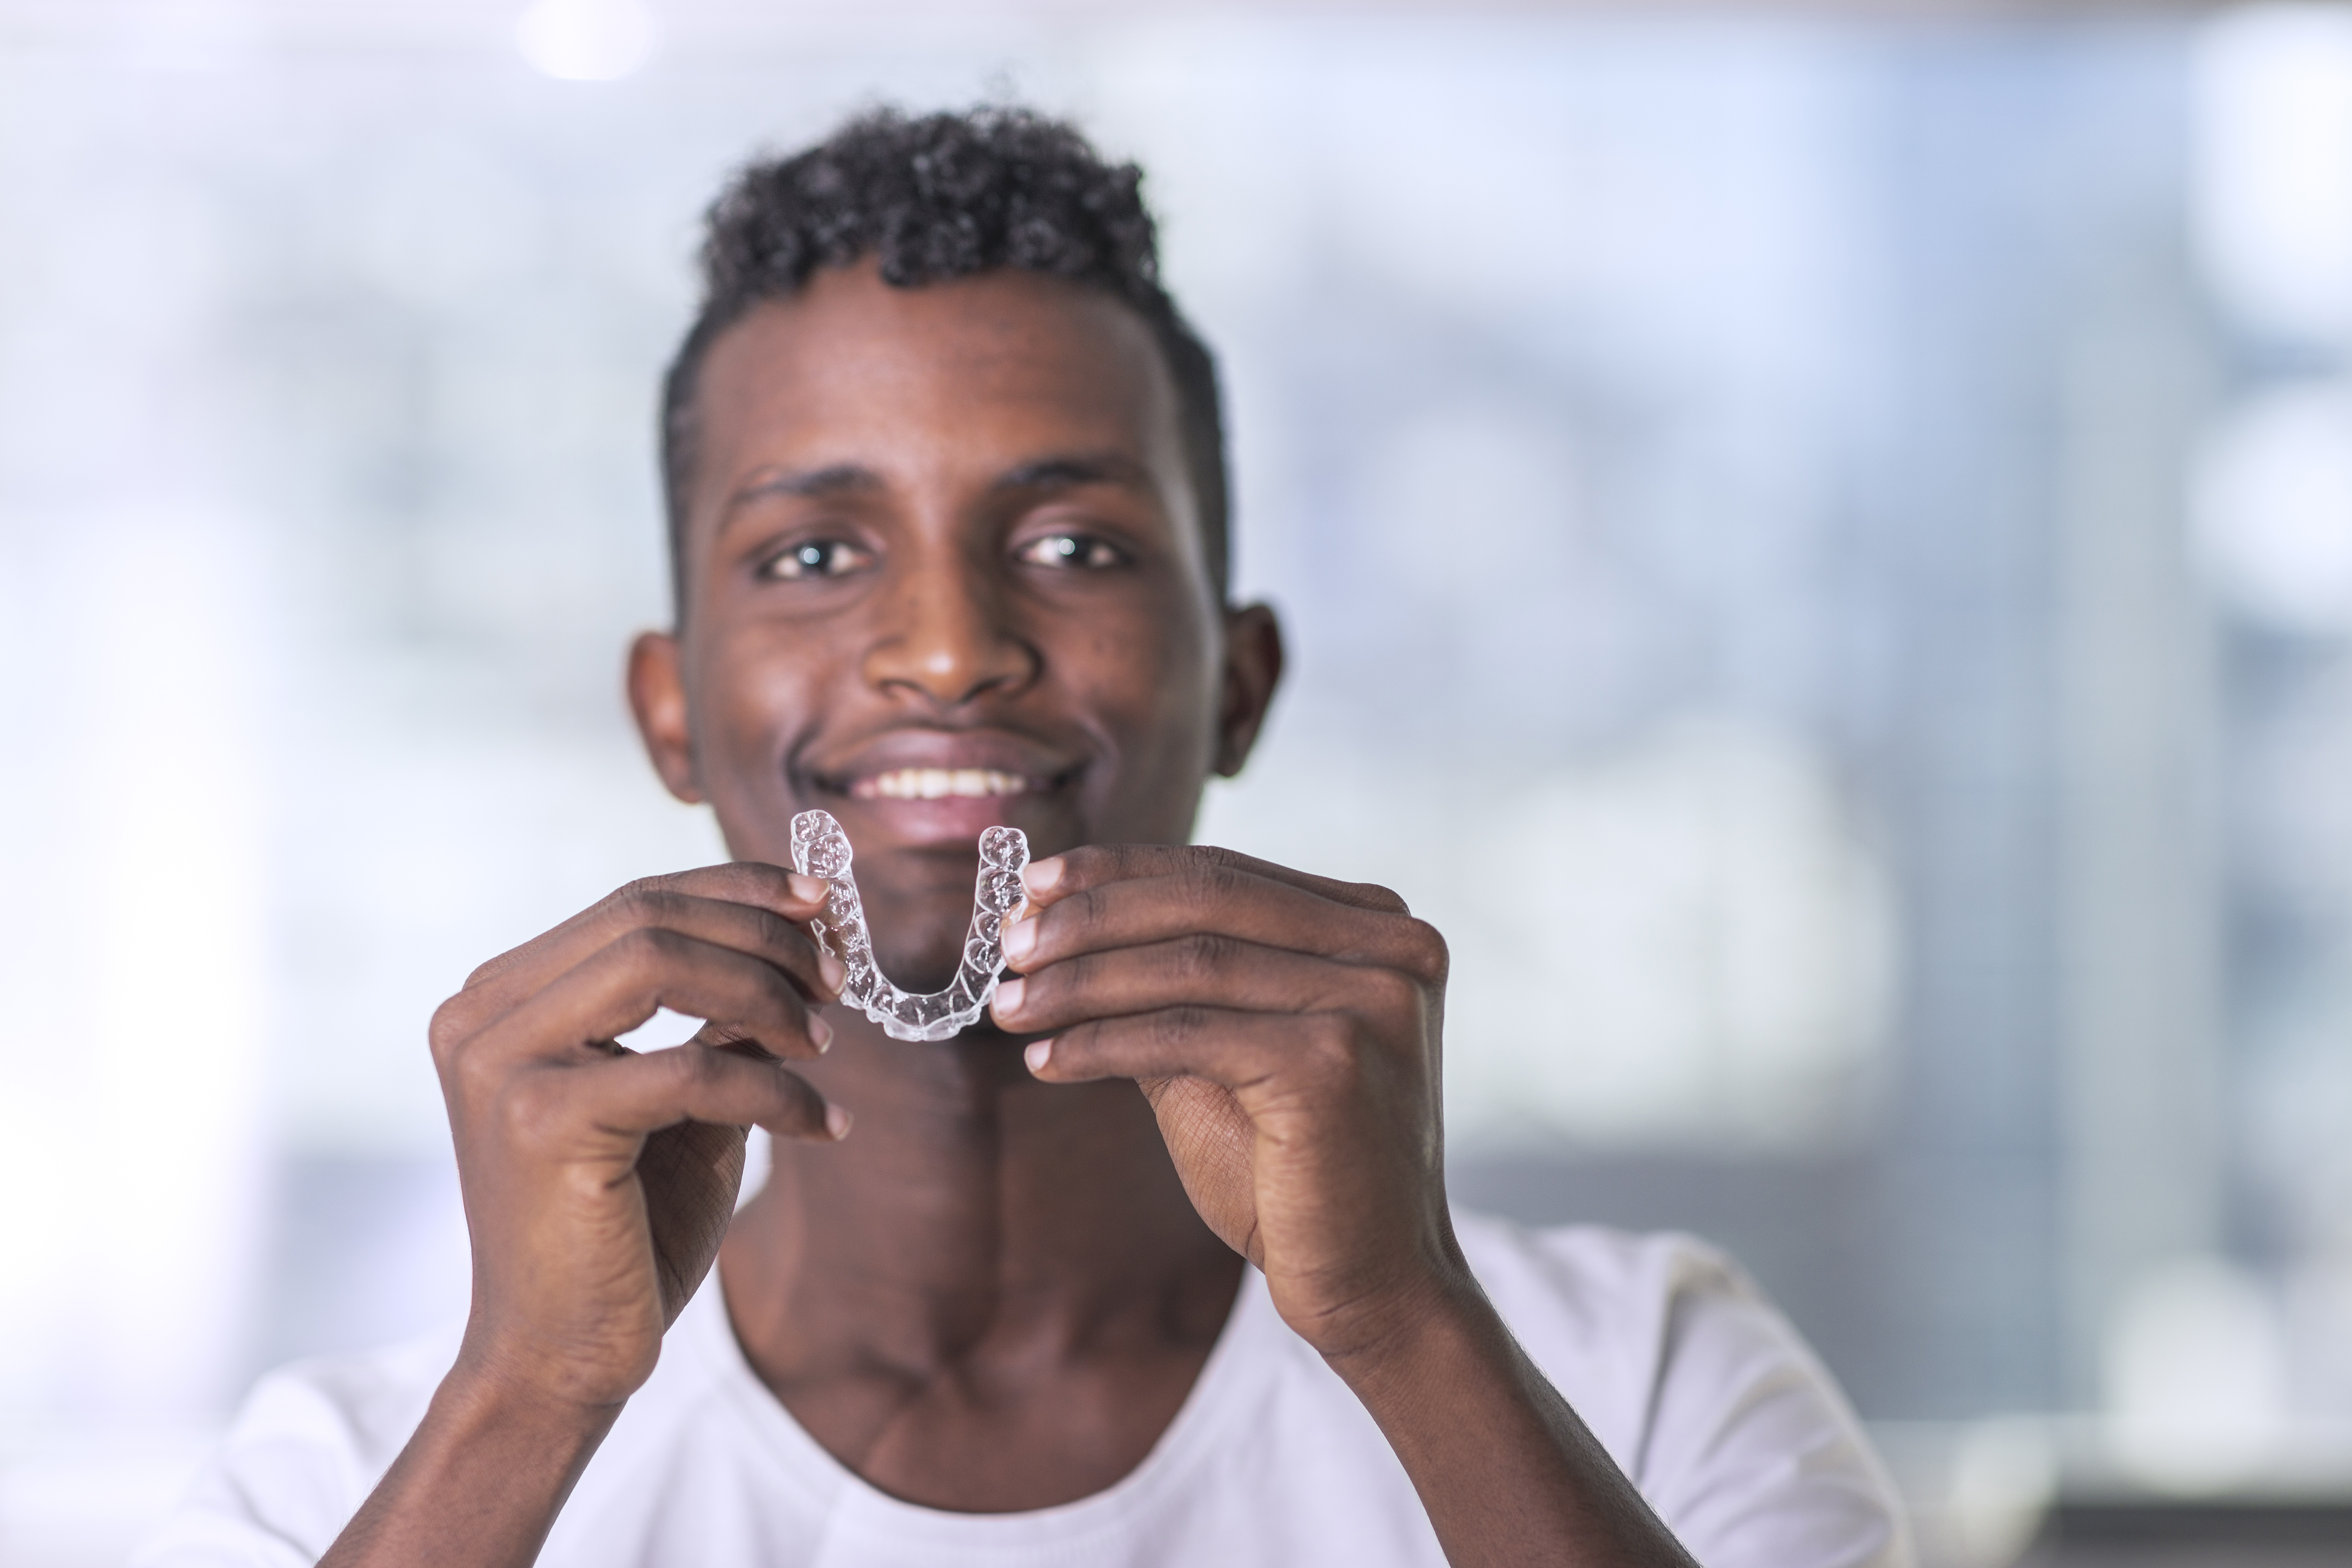 man with Invisalign aligners